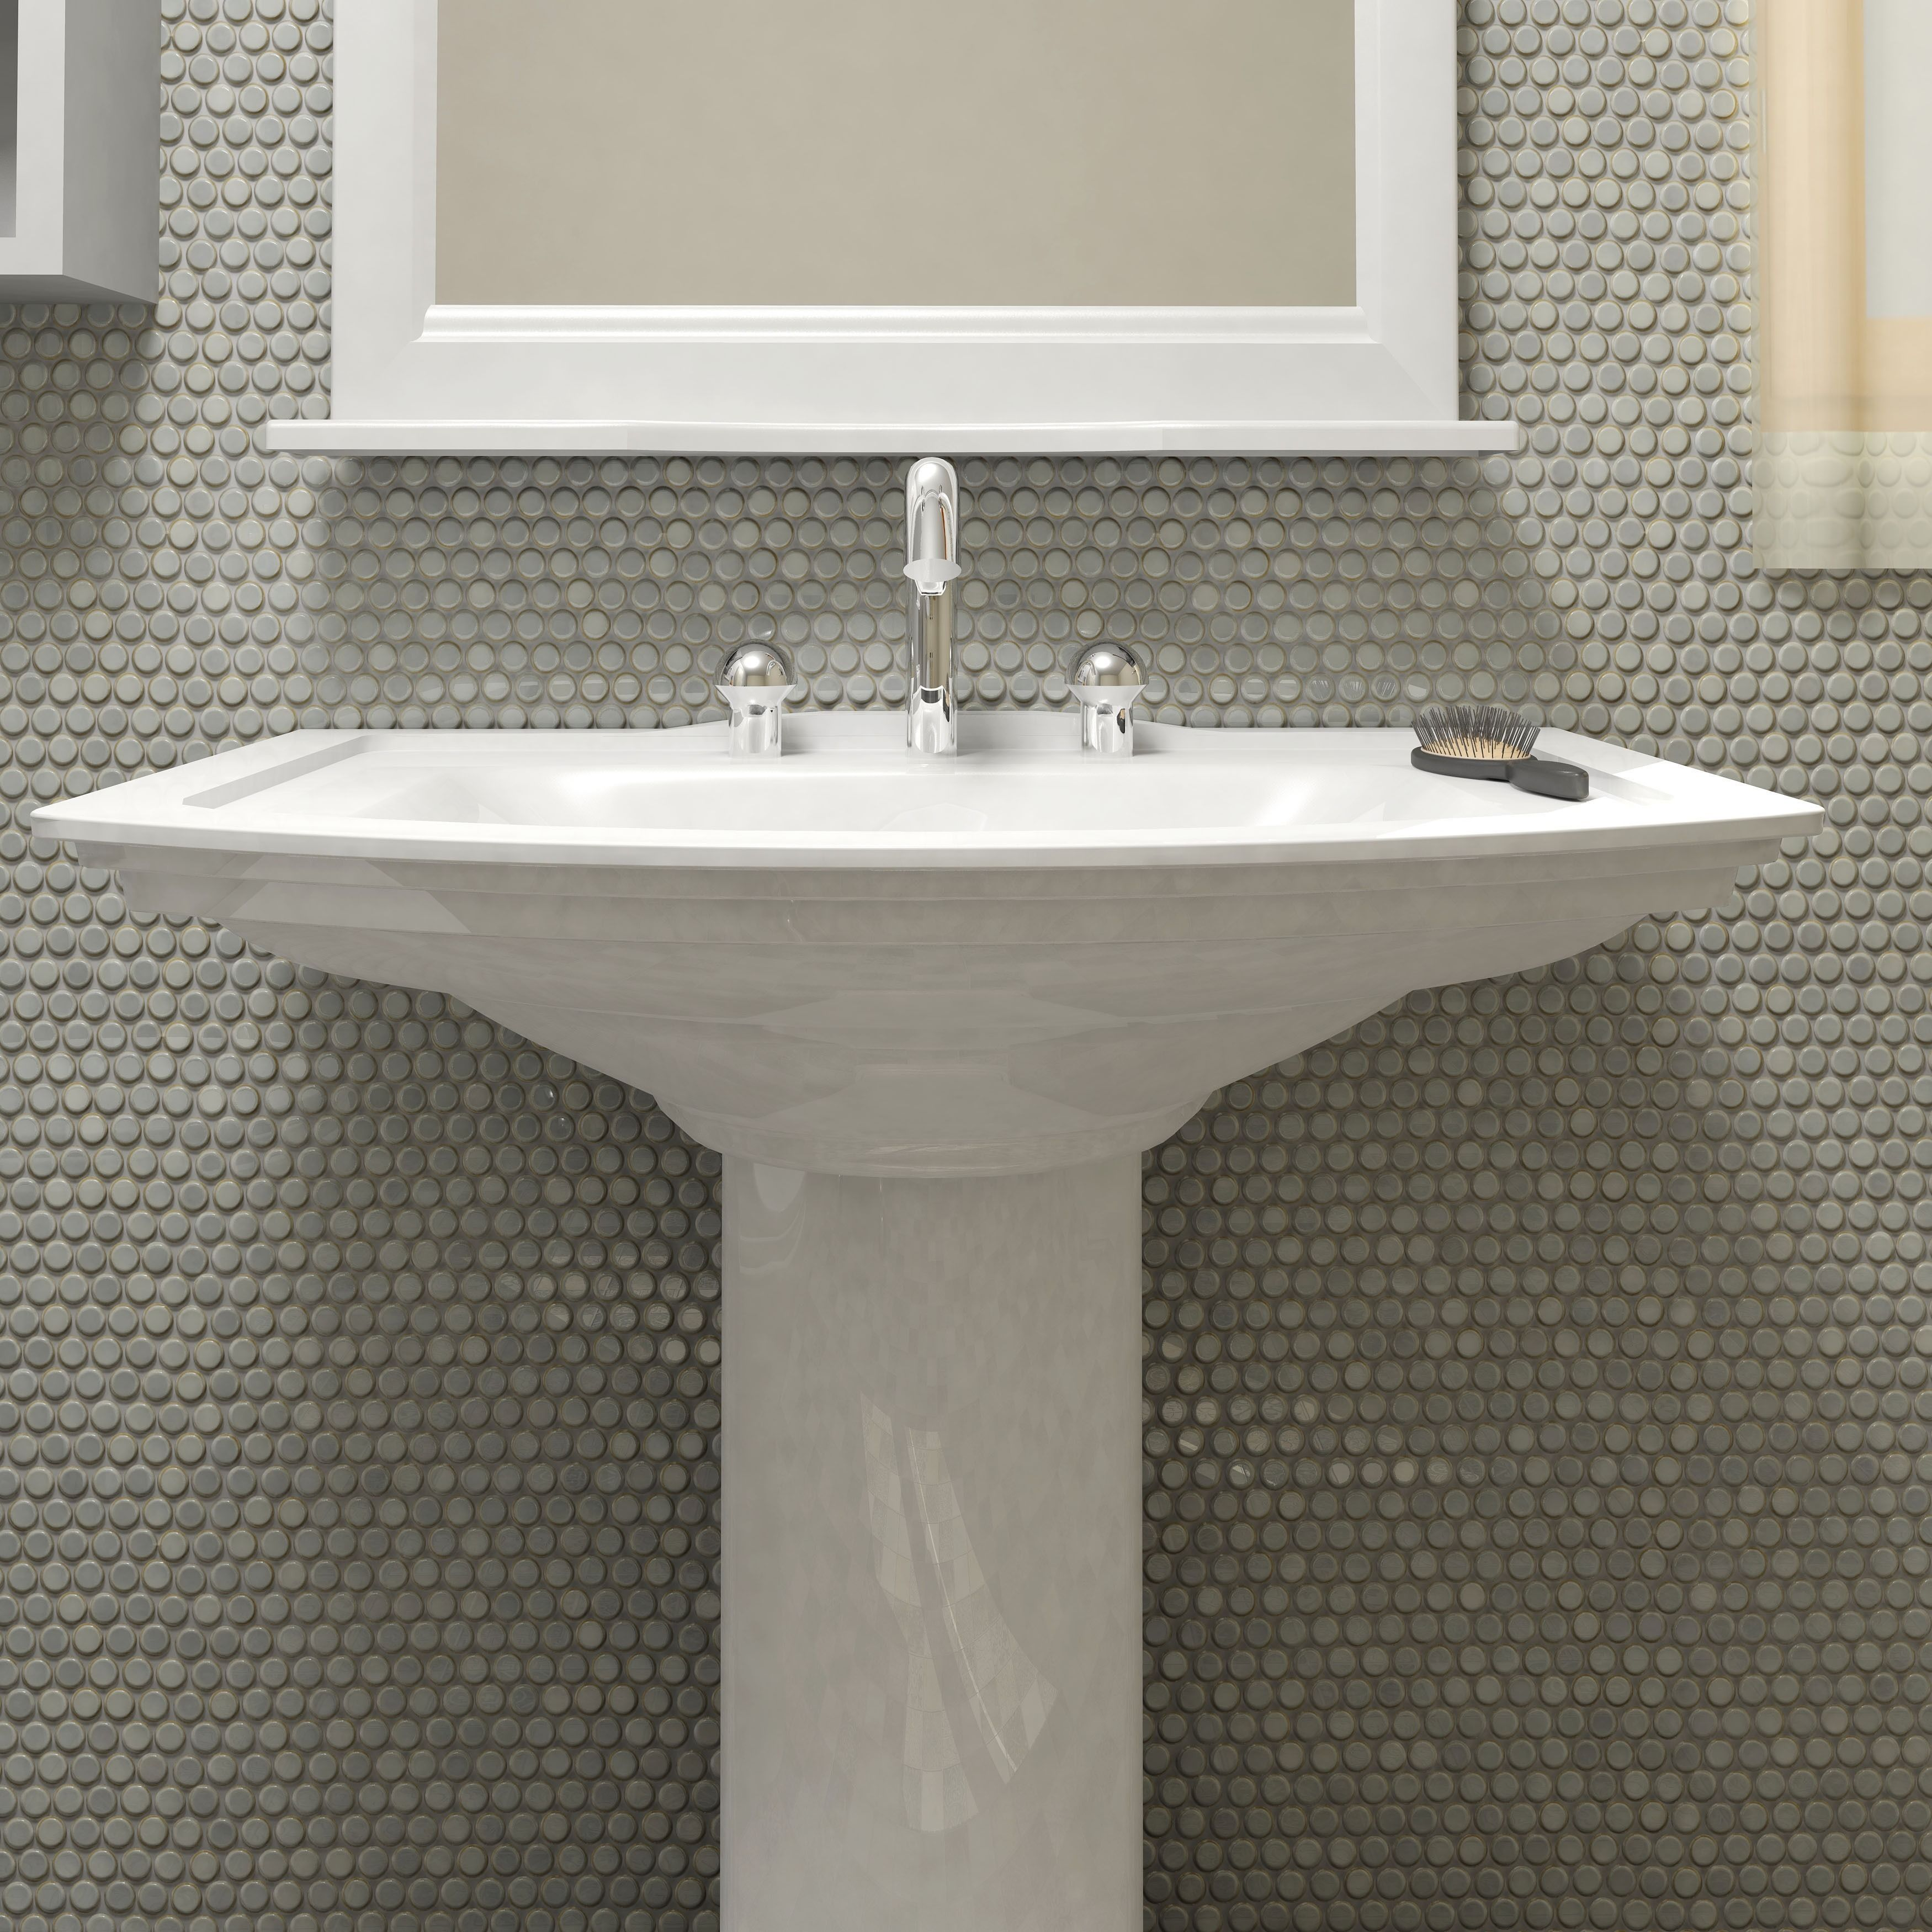 This somertile 12x1225 inch penny grey eye porcelain mosaic floor this somertile penny grey eye porcelain mosaic floor and wall tile offers a glazed in an eye drop effect taupe shades and a pleasing mixture of grey with dailygadgetfo Images